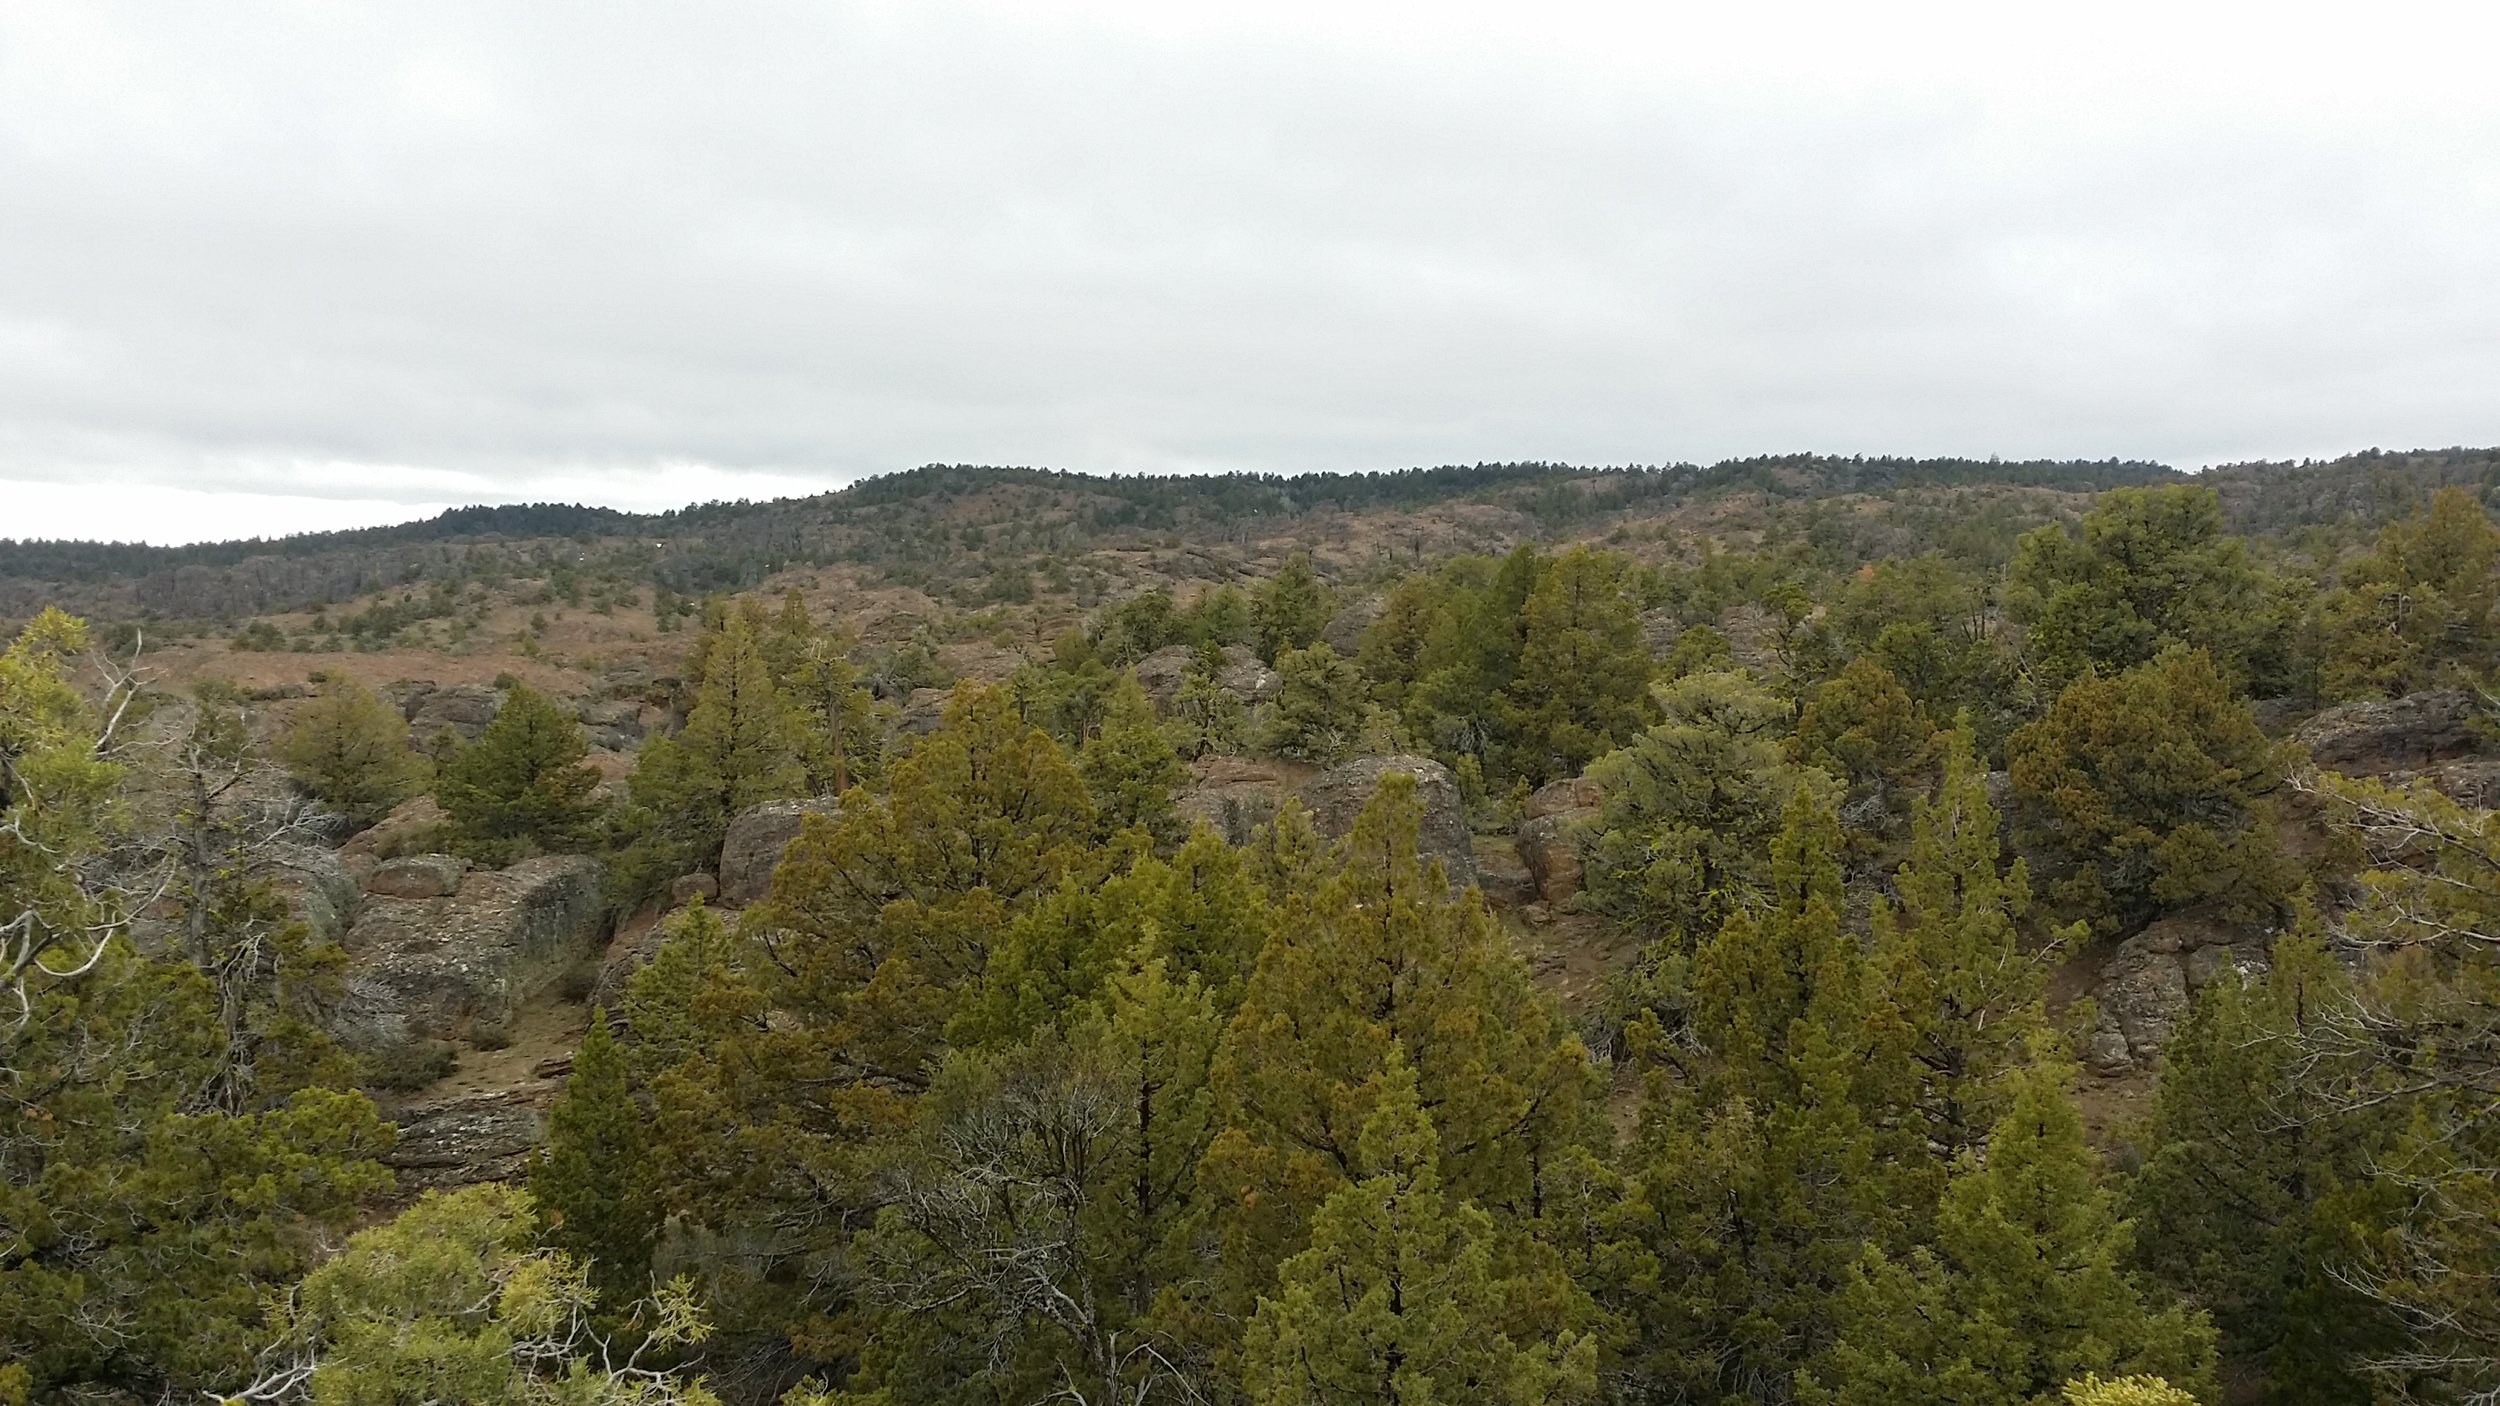 Looking north toward the wilderness highpoint.